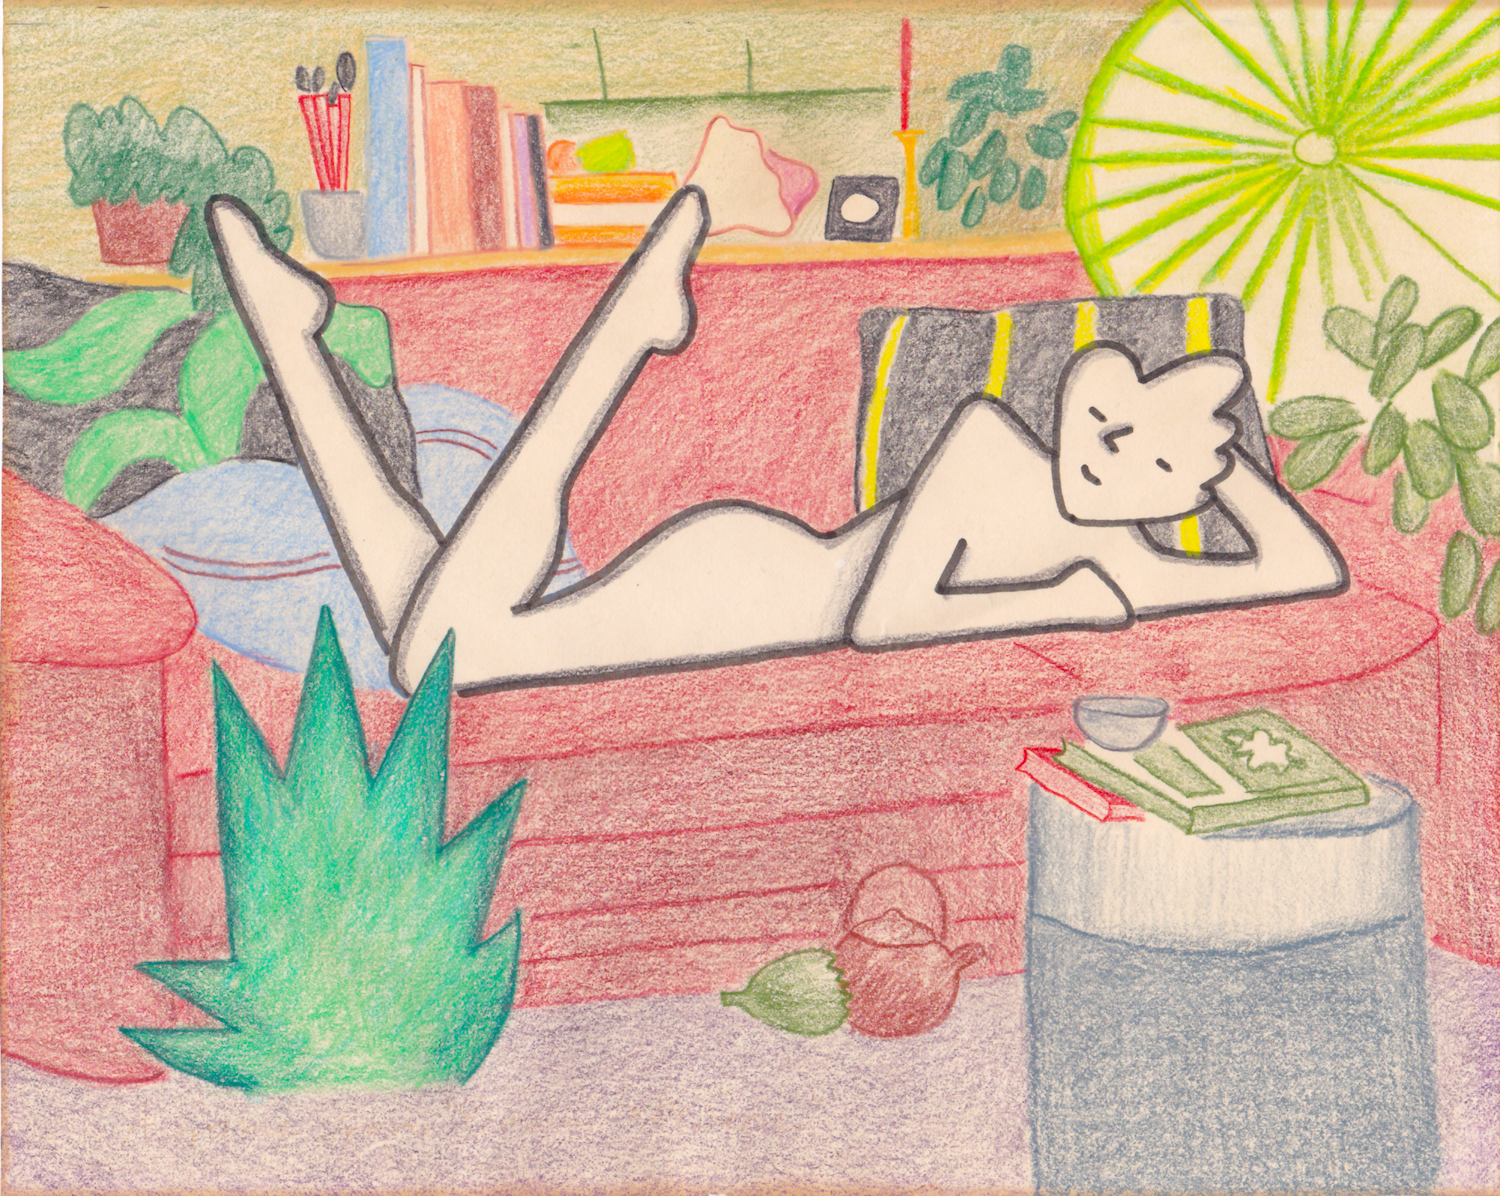 Annie Mae on the Couch by Jane Aaron